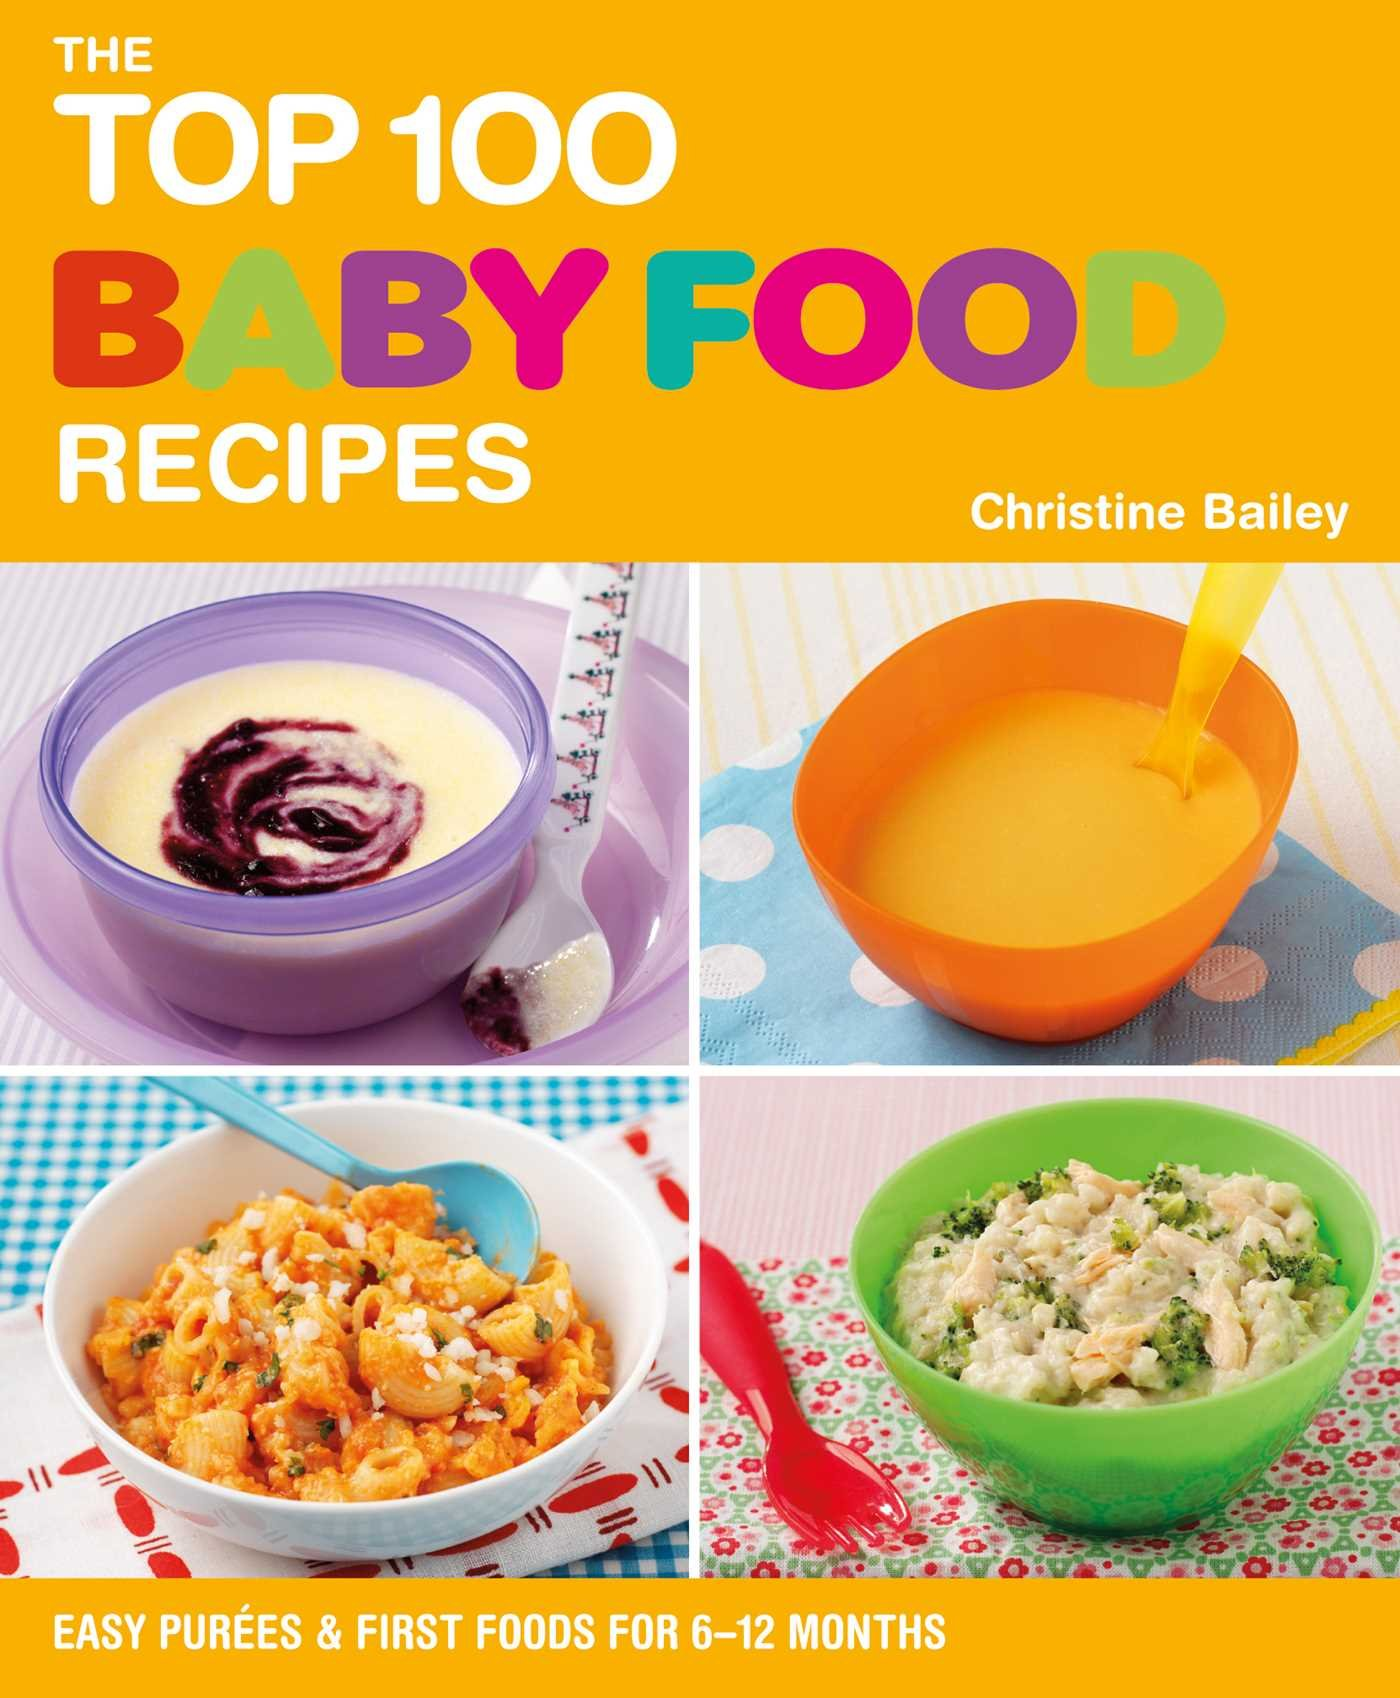 The top 100 baby food recipes amazon christine bailey the top 100 baby food recipes amazon christine bailey 9781844839513 books forumfinder Images